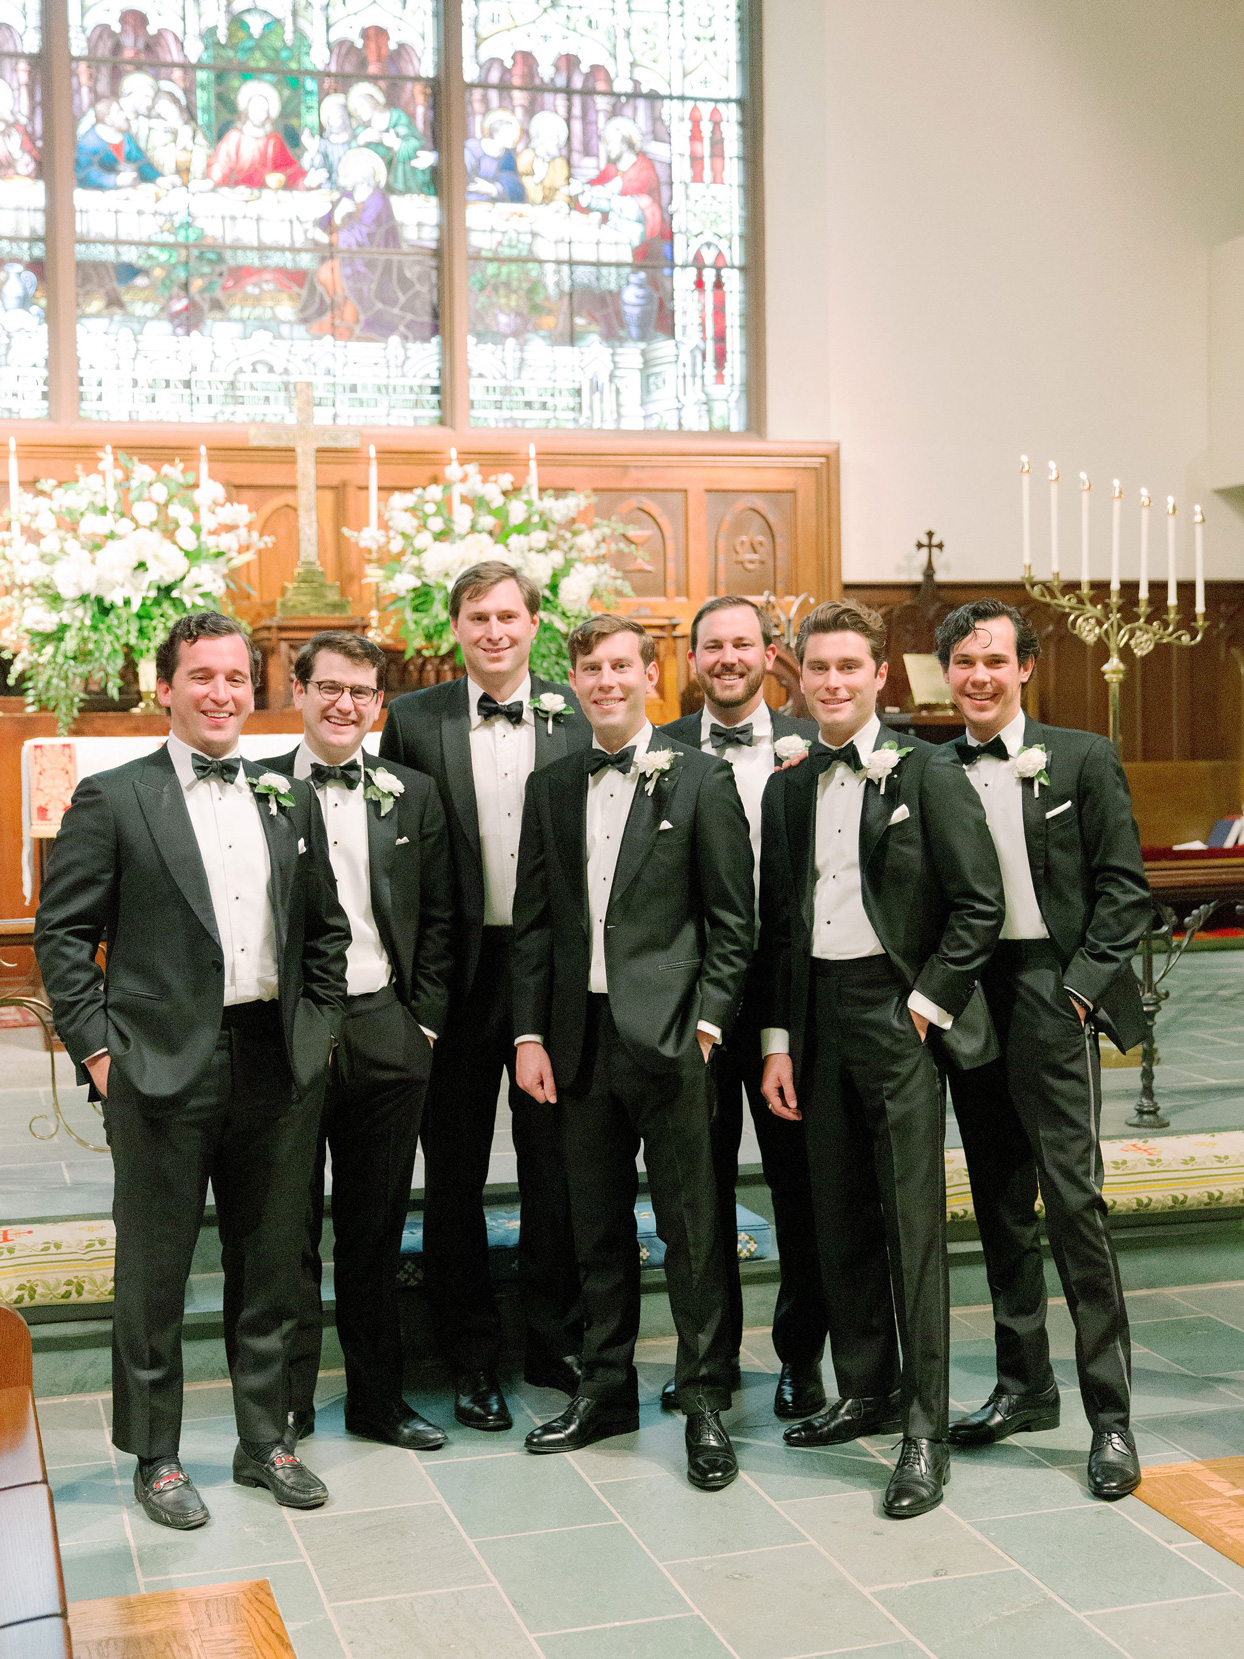 groom with groomsmen in classic black suits